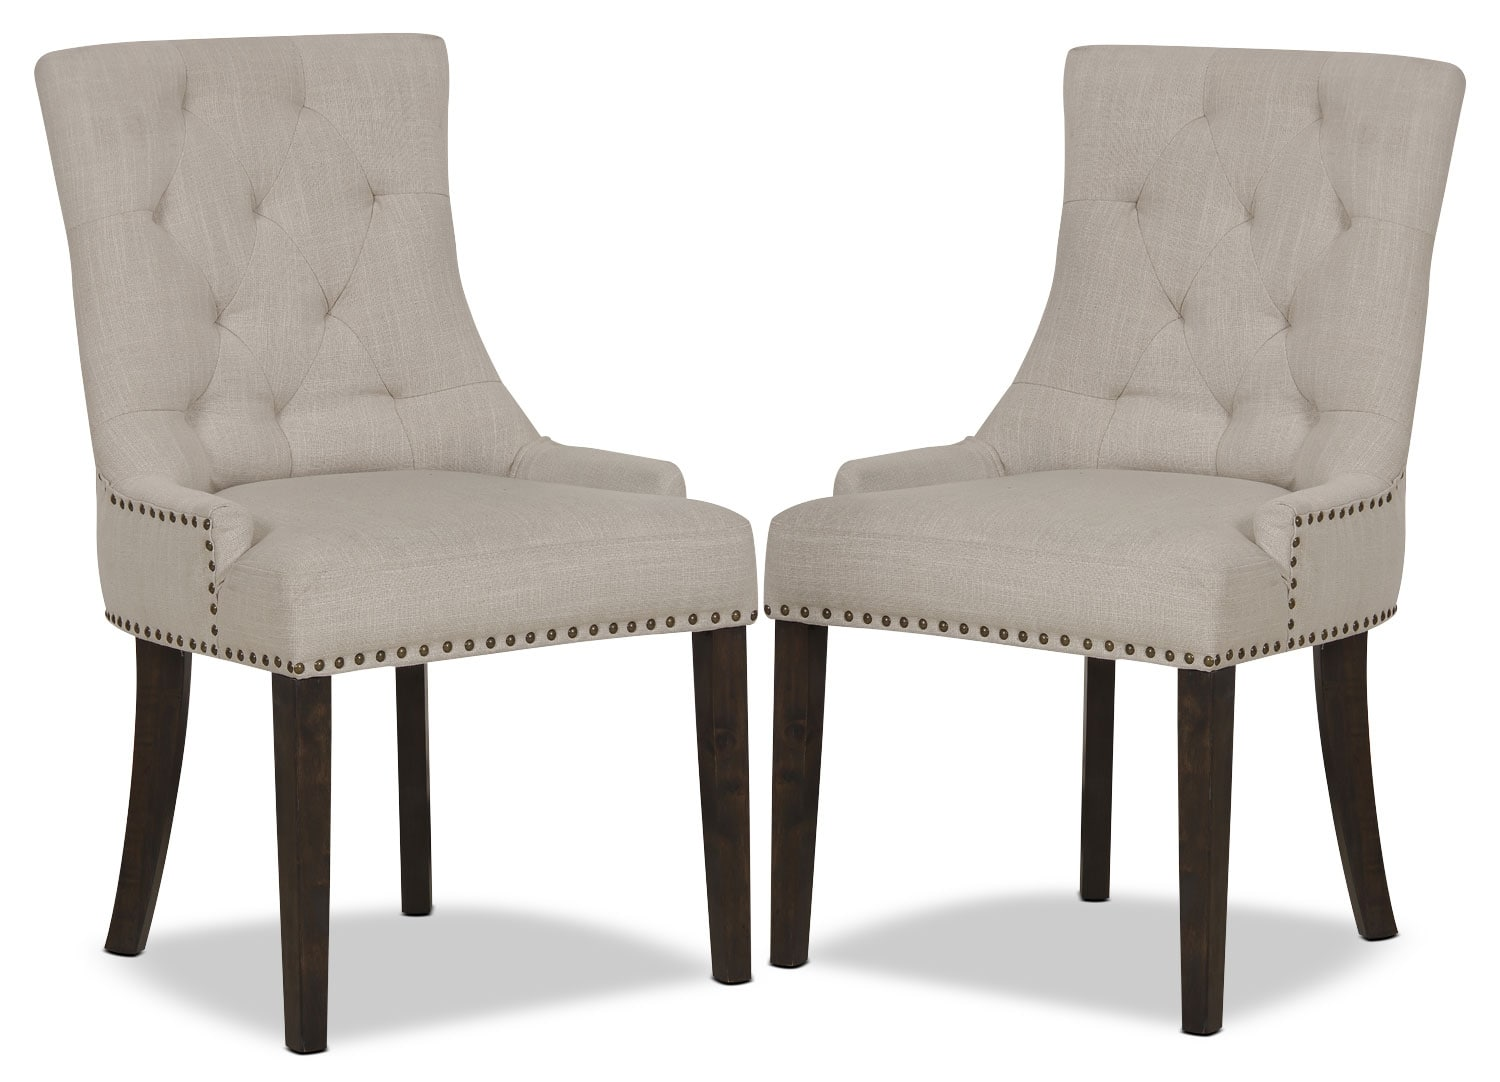 Caroline Wing Side Chair, Set of 2 – Ivory